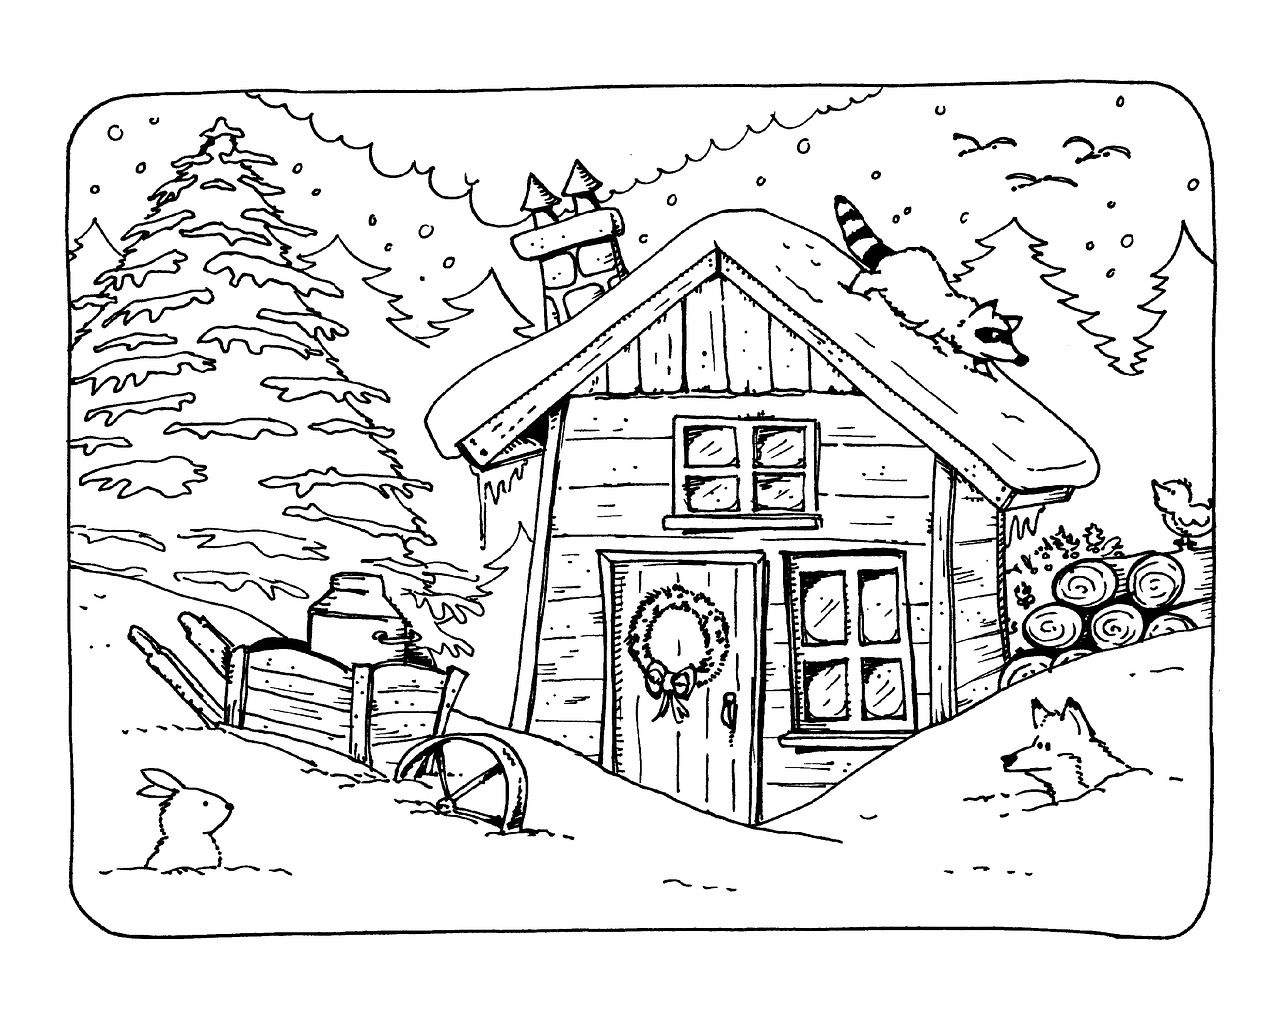 Vacation Winter Cottage Snow Cold Mountain Vacation Winter Cottage Snow Cold M Coloring Pages Free Coloring Pages Free Printable Coloring Pages